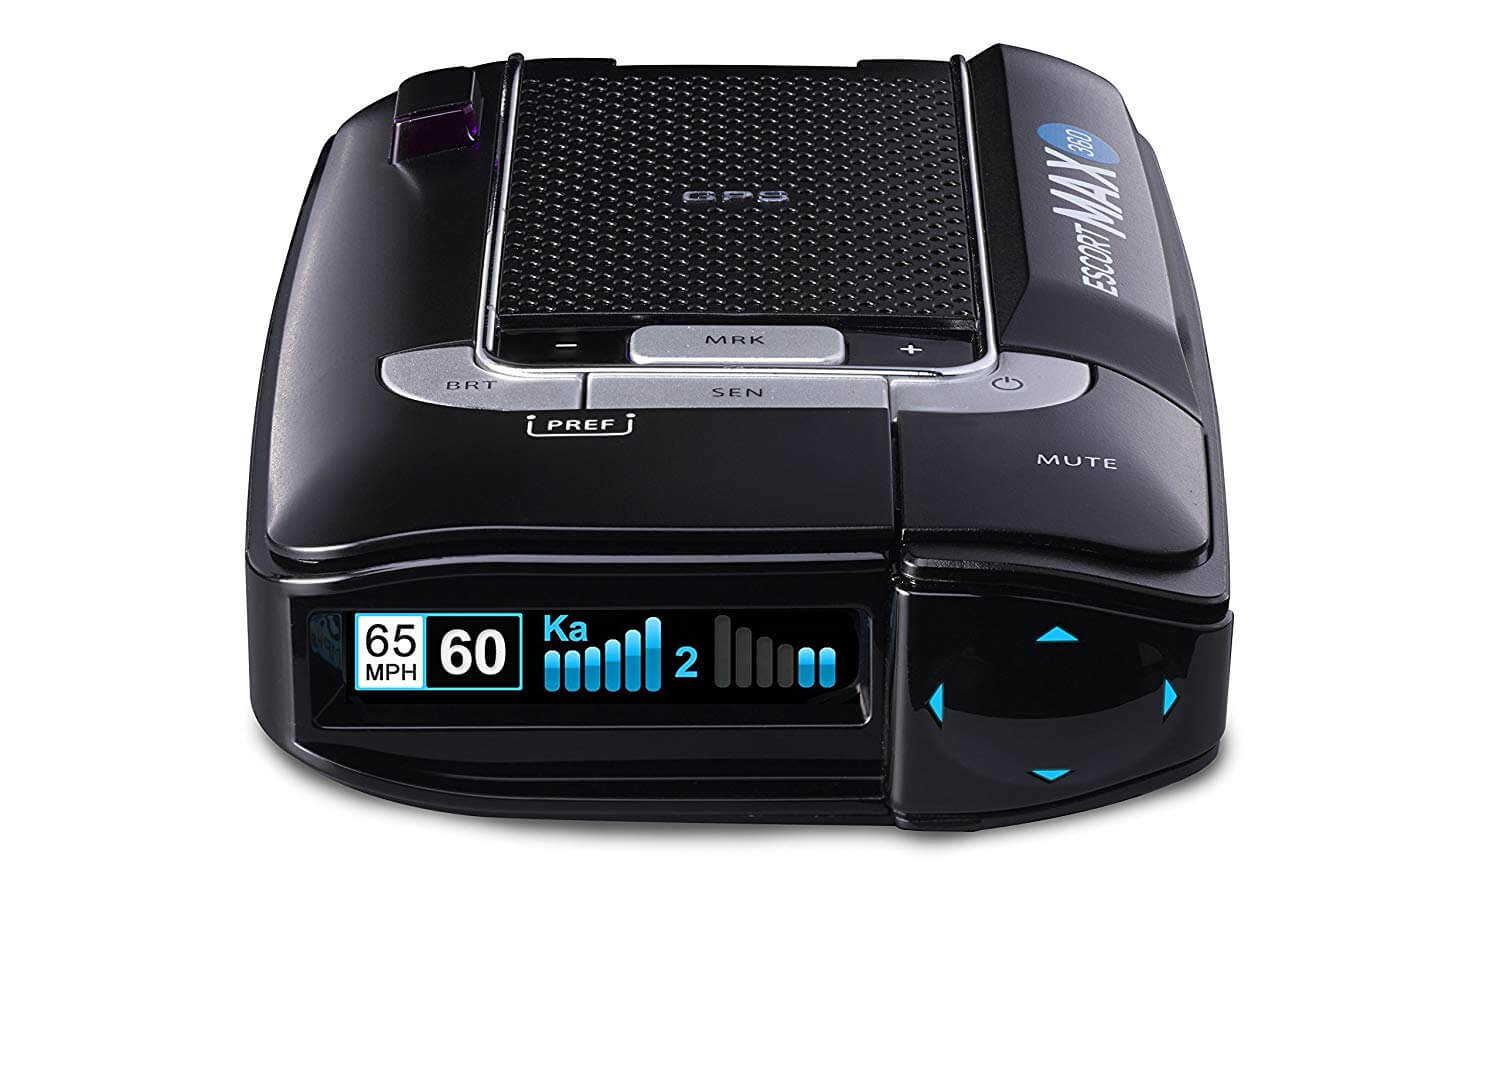 ESCOR-Laser-Radar-Detector TOP 9 Best Radar Detector Reviews in 2020